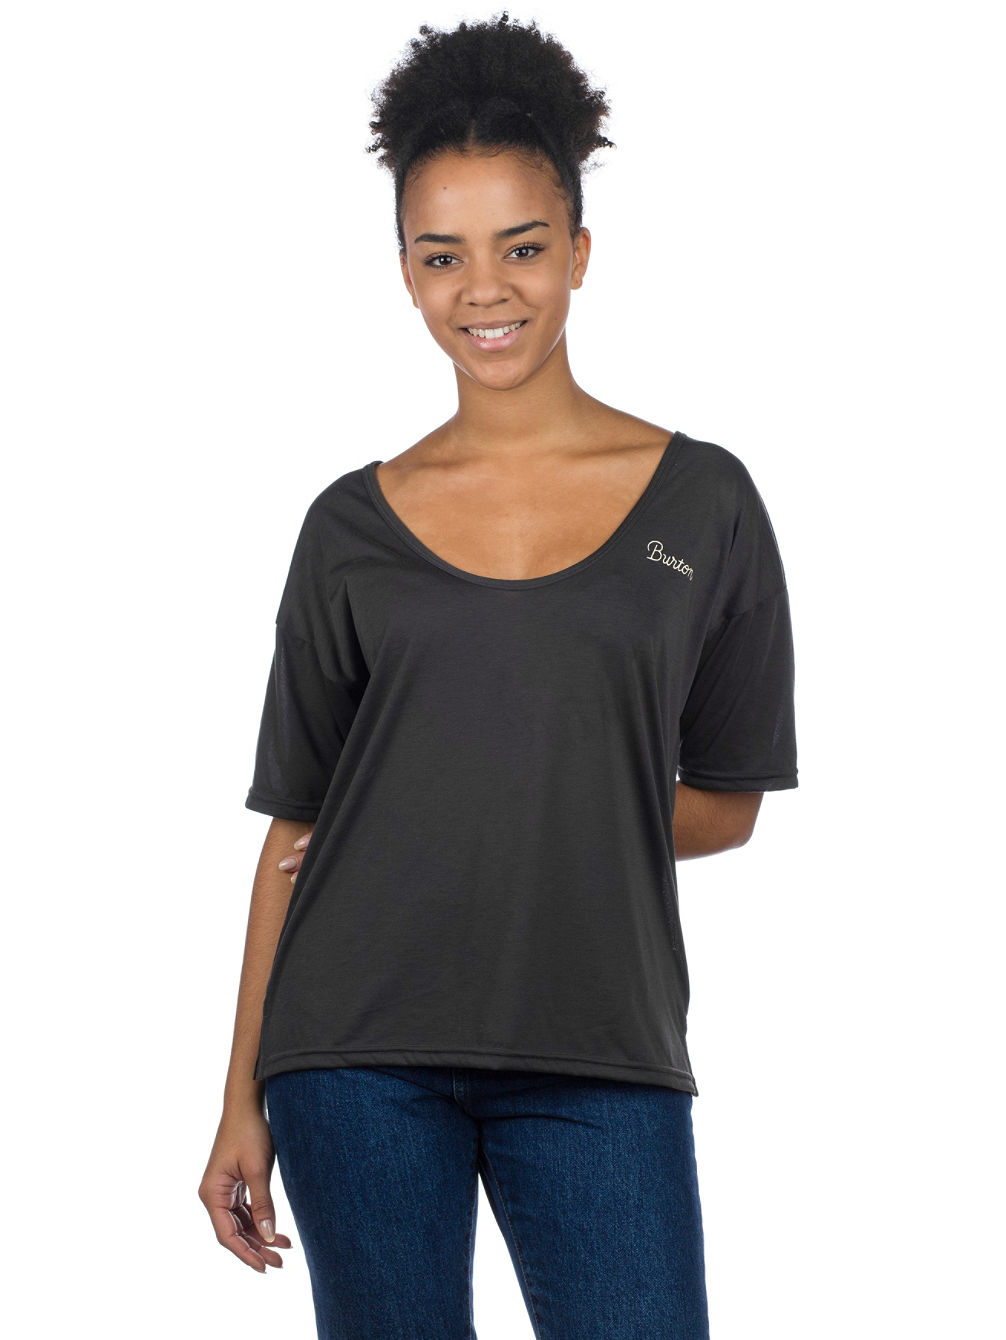 Luxemore Scoop T-Shirt